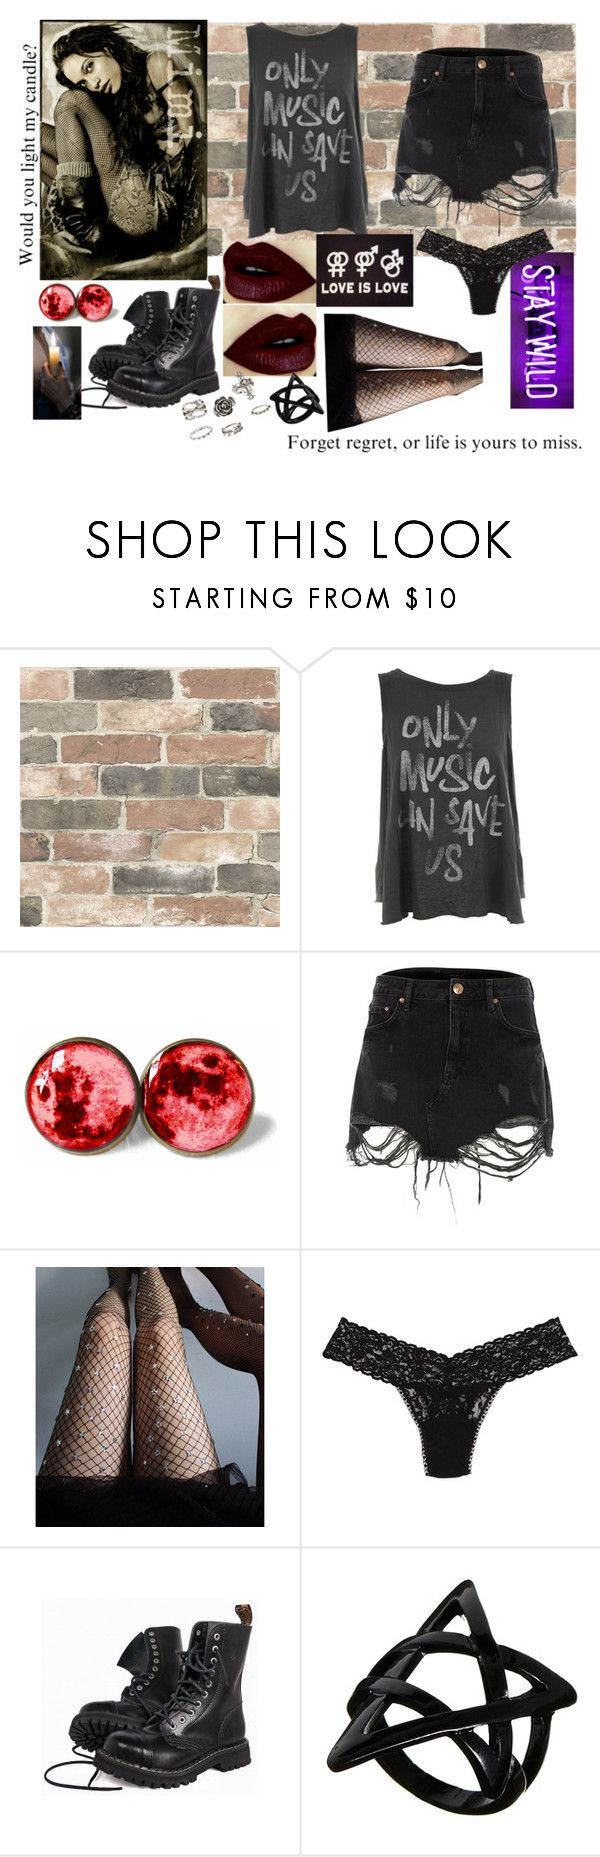 """Mimi"" by lots-of-planets ❤ liked on Polyvore featuring Wall Pops!, Junk Food Clothing, River Island, Lirika Matoshi, Hanky Panky, ASOS and Charlotte Russe"